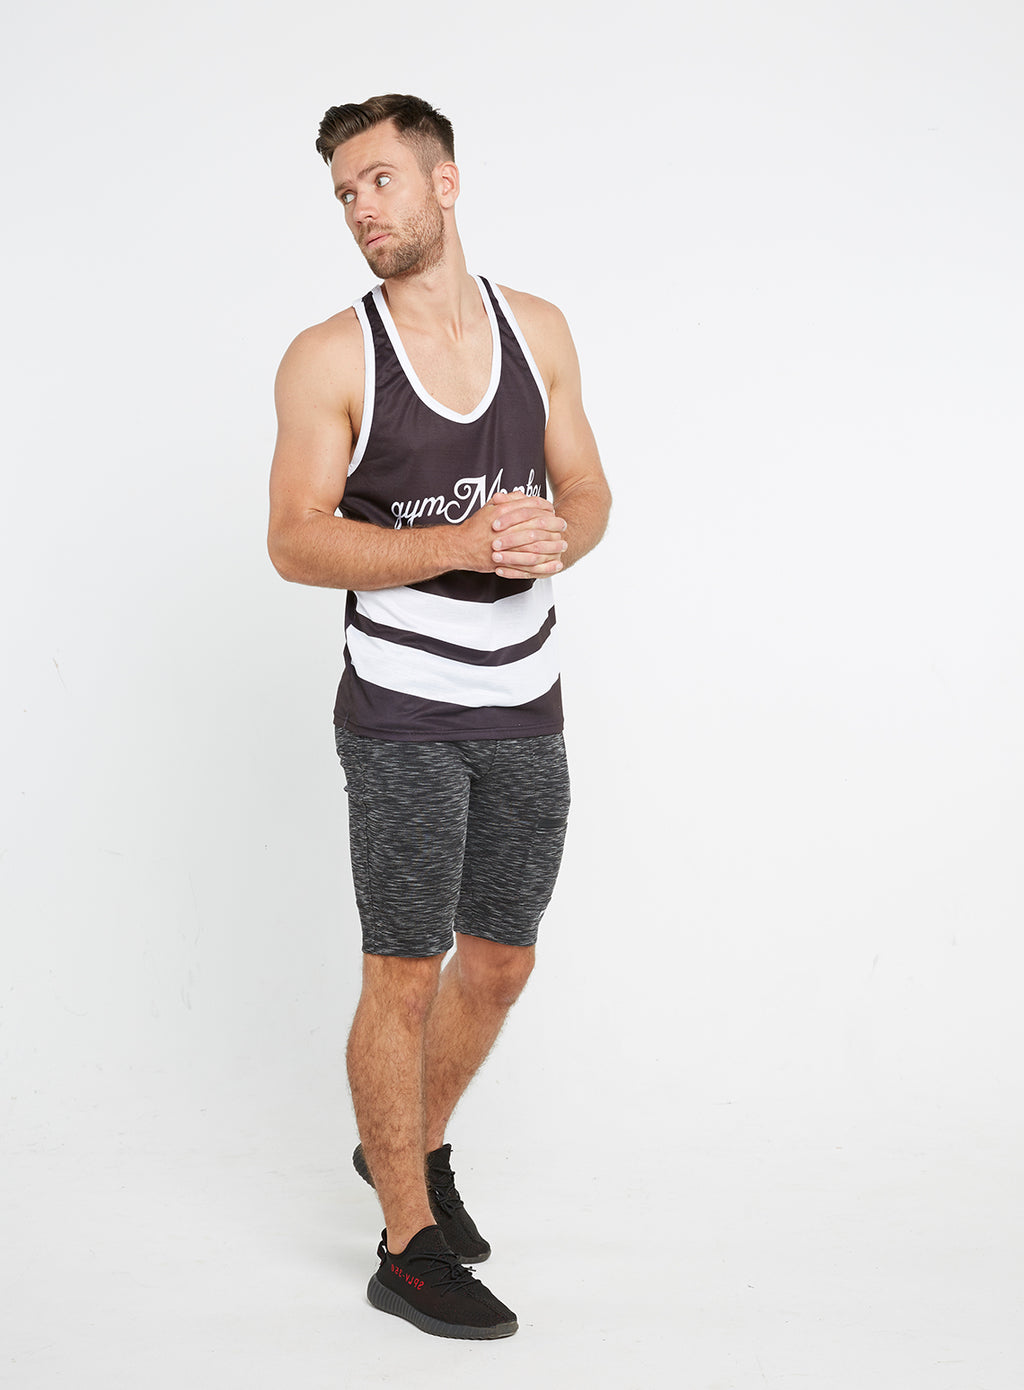 Gym Monkee -  Black and White Sublimated Vest MOVING